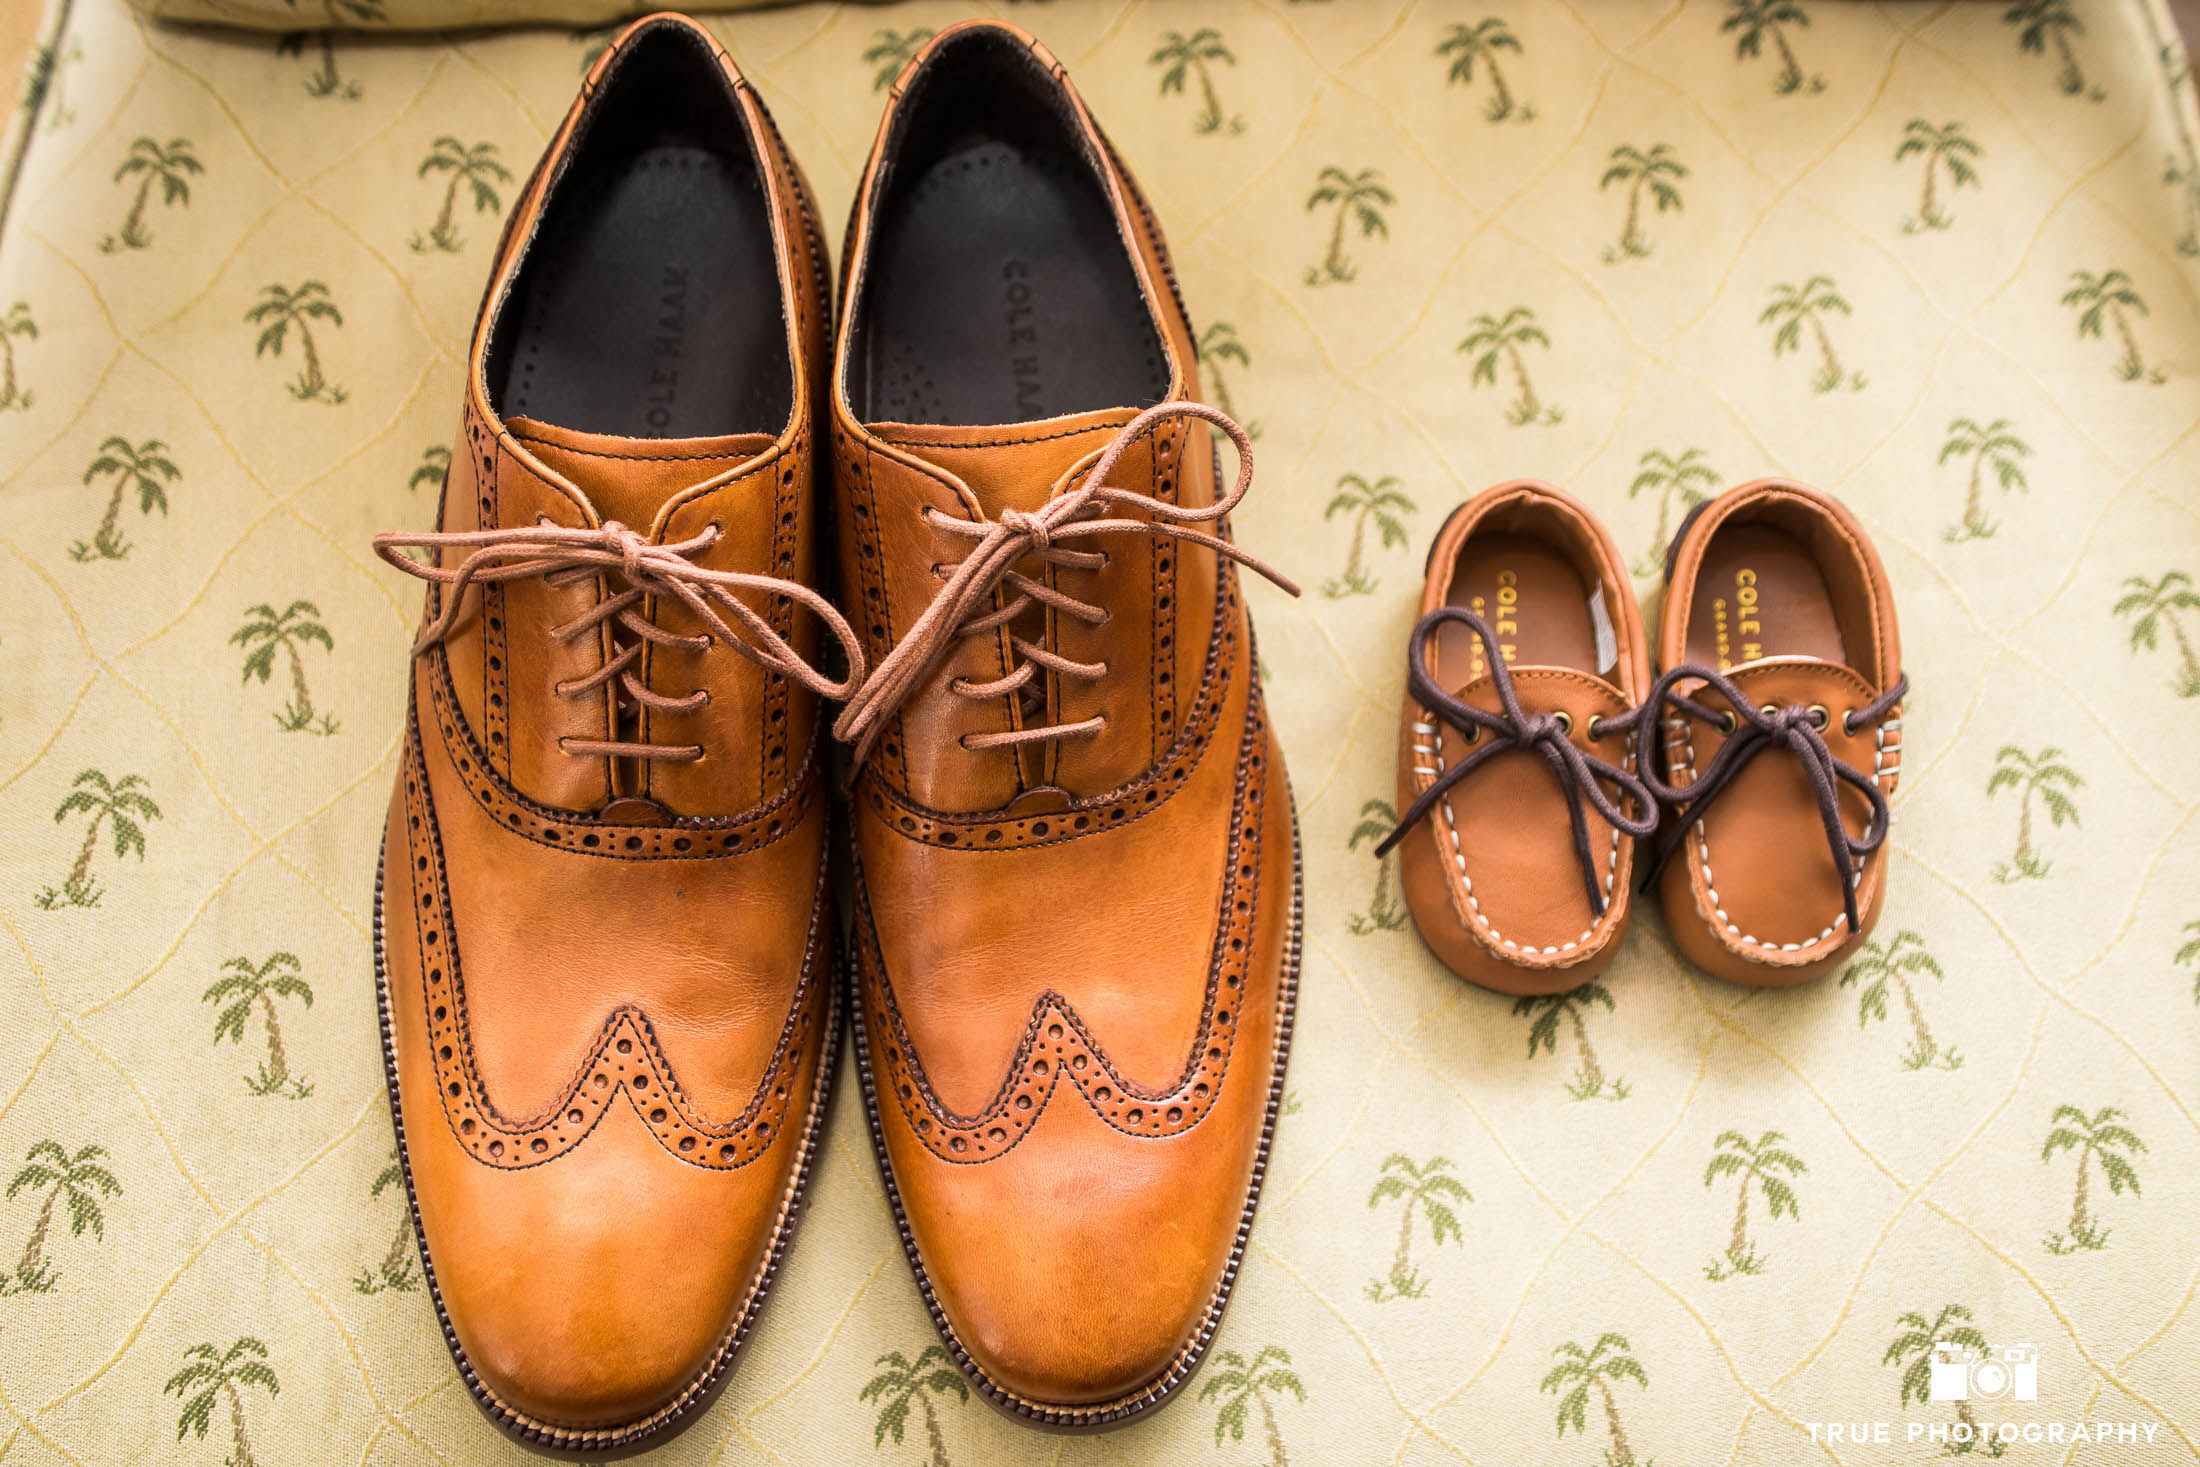 Matching Coleman's dress shoes for Groom and Son